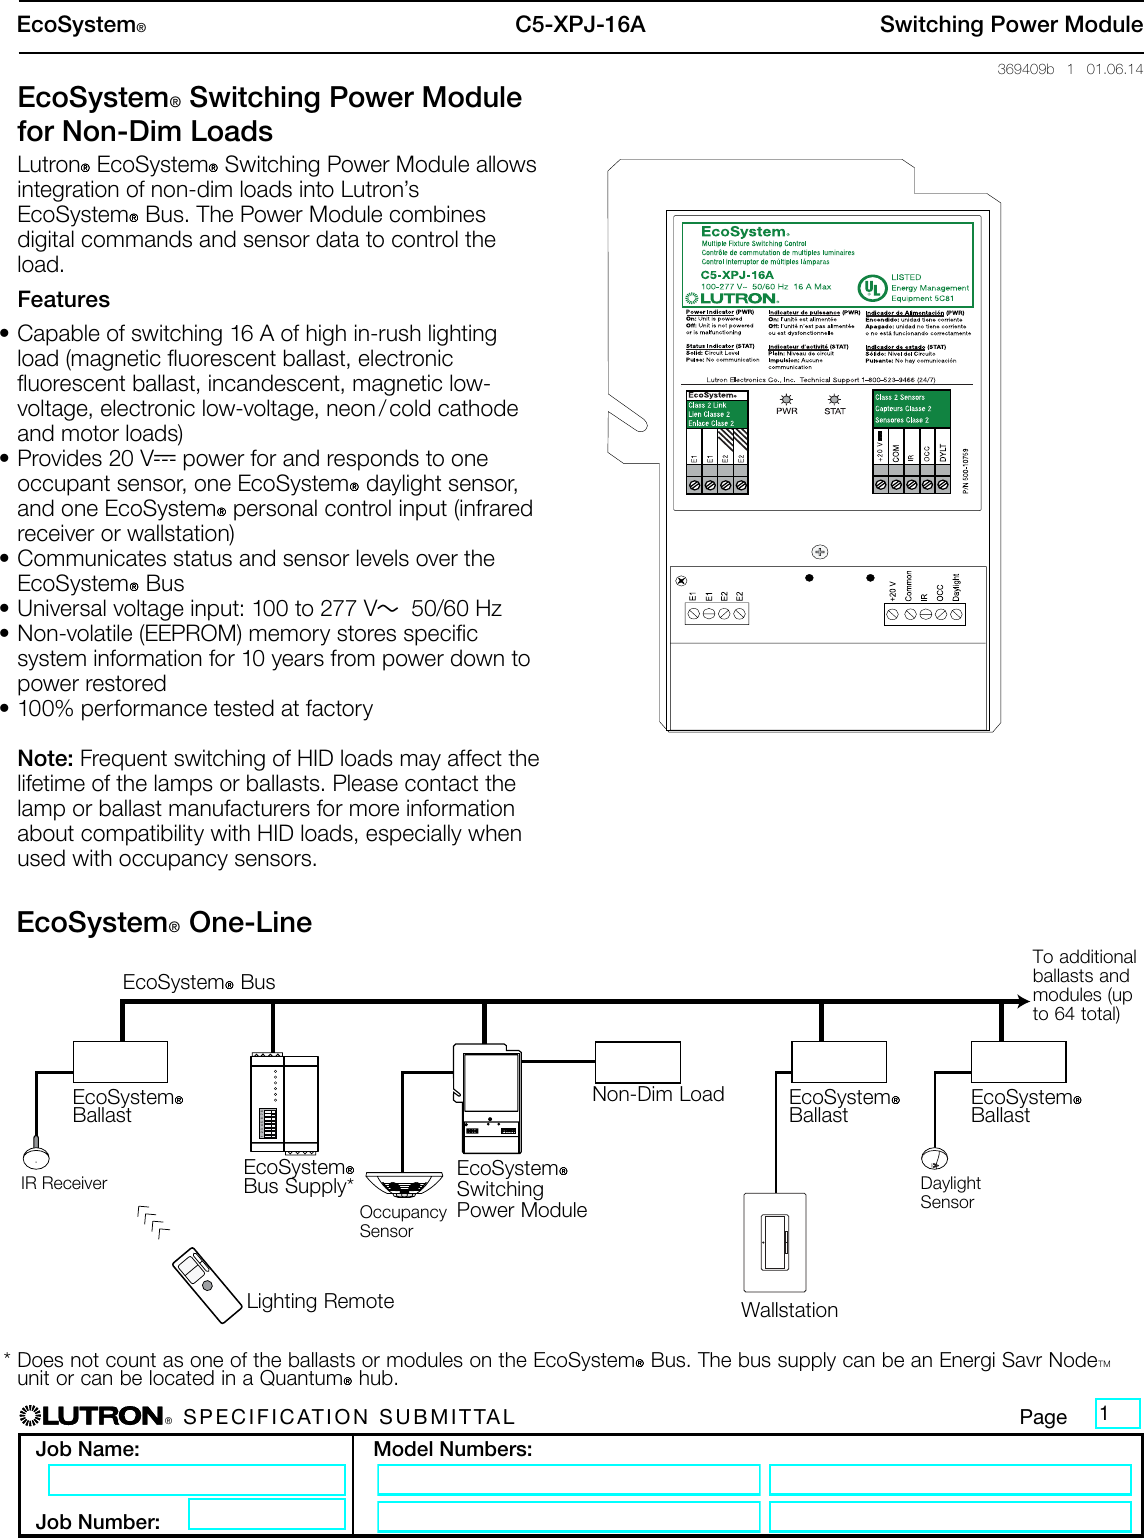 lutron ecosystem ballast wiring diagram ecosystem switching power module for non dim loads spec submittal  switching power module for non dim